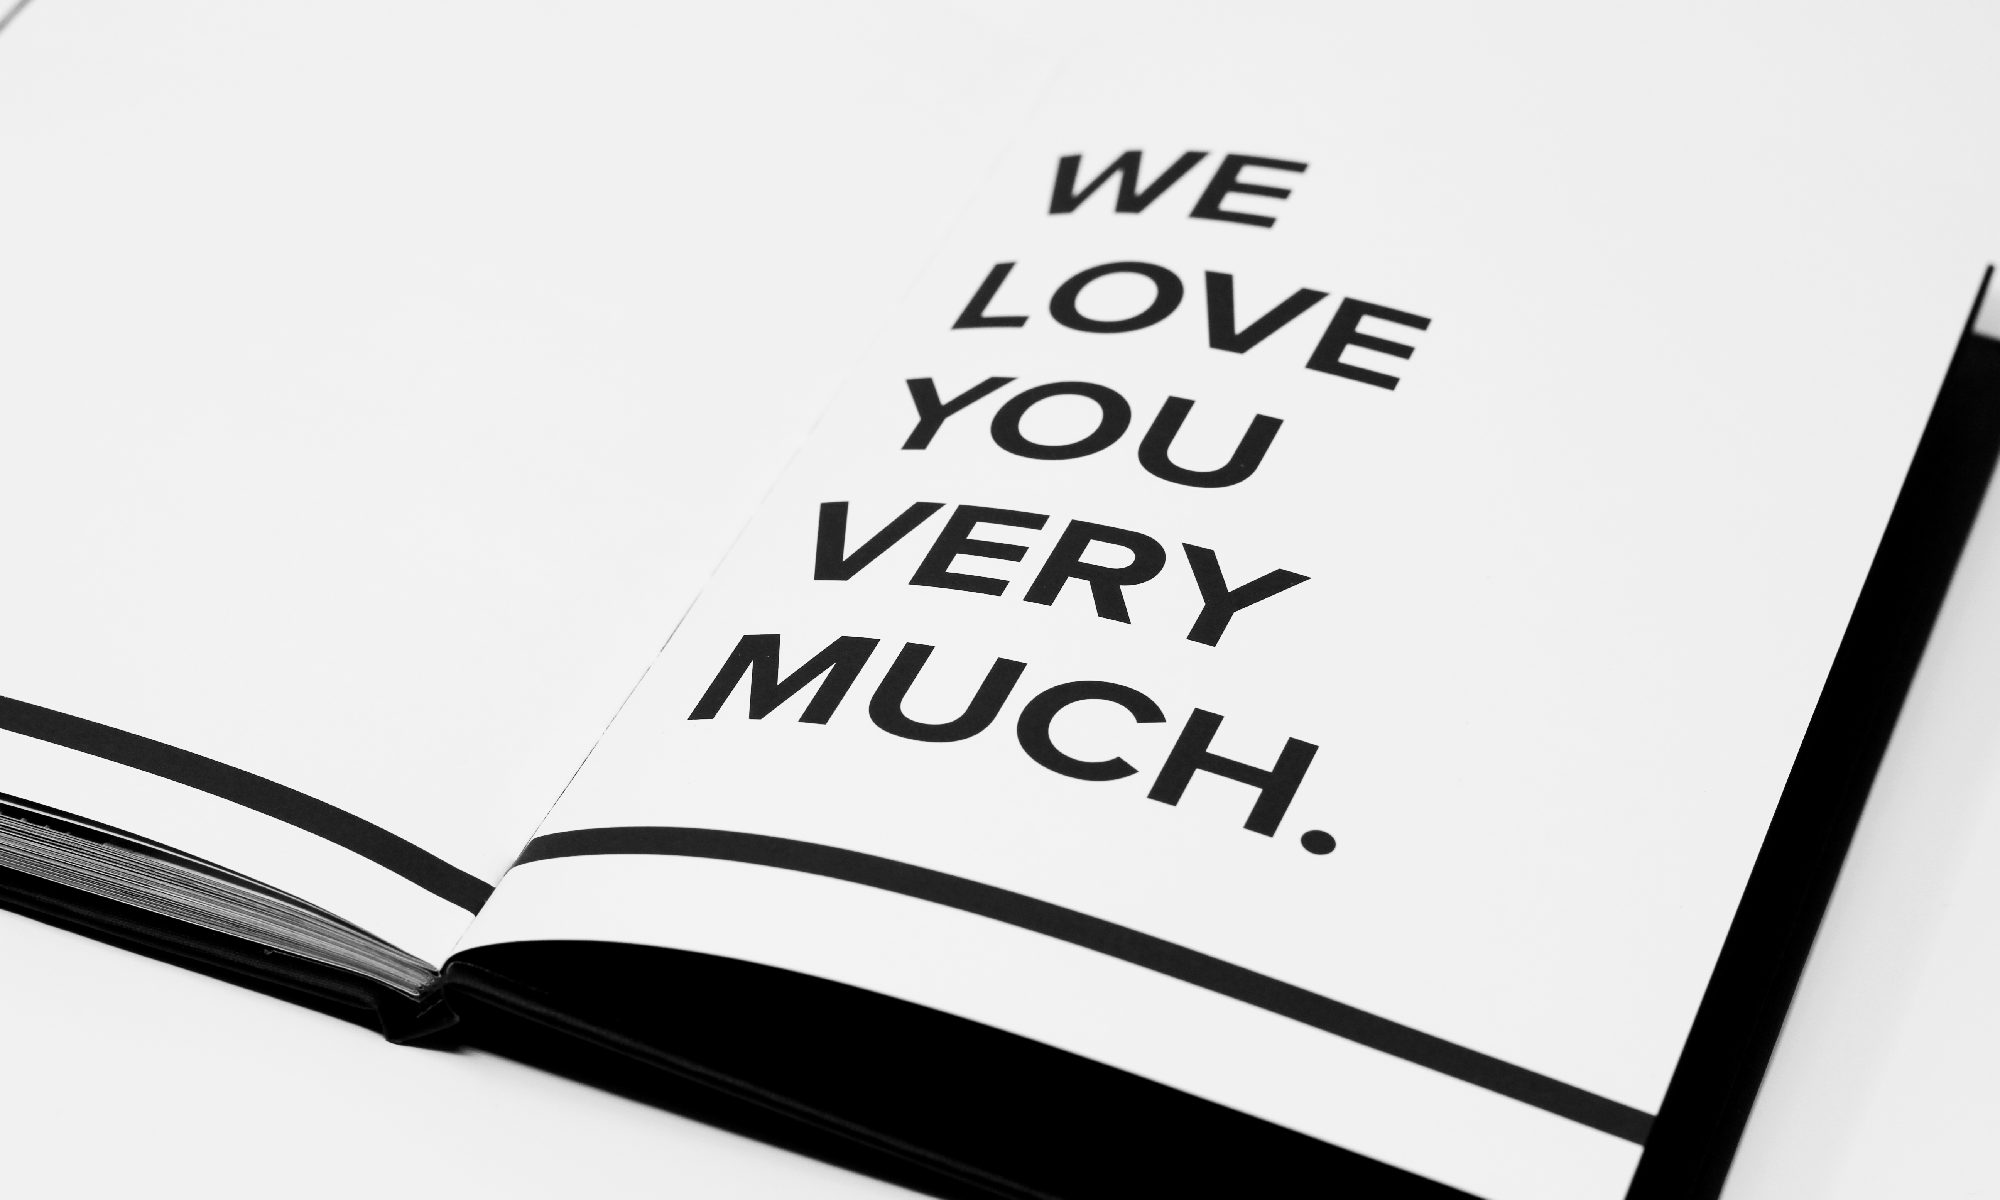 weloveyouverymuch.png